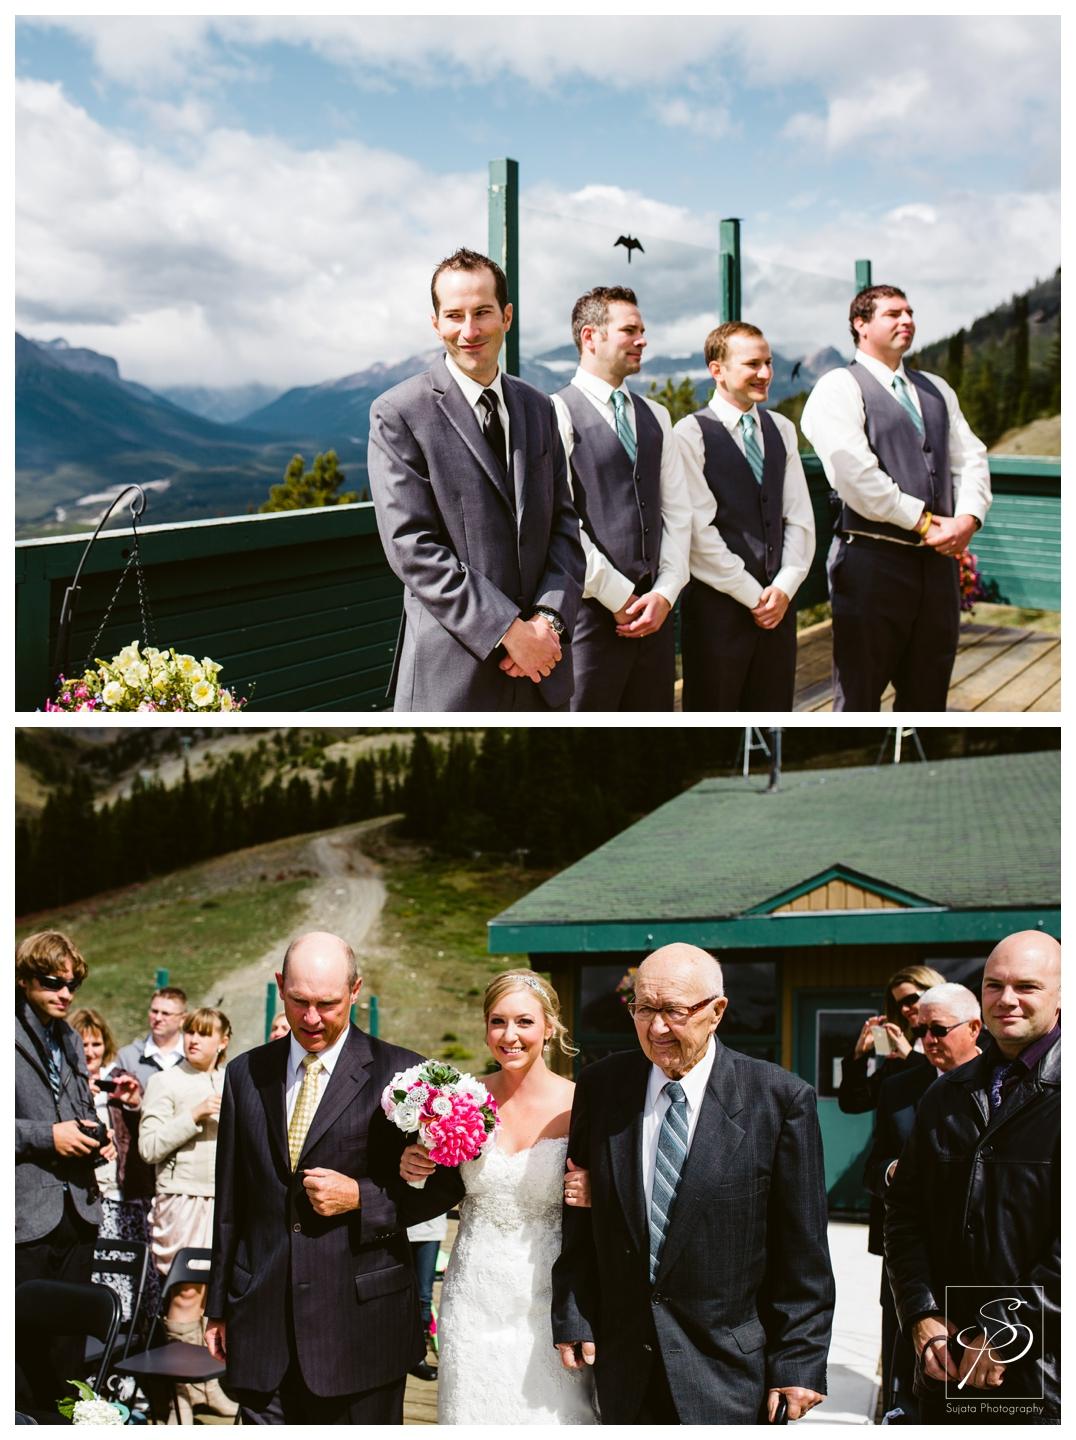 Bride coming down the aisle at Lake Louise wedding ceremony